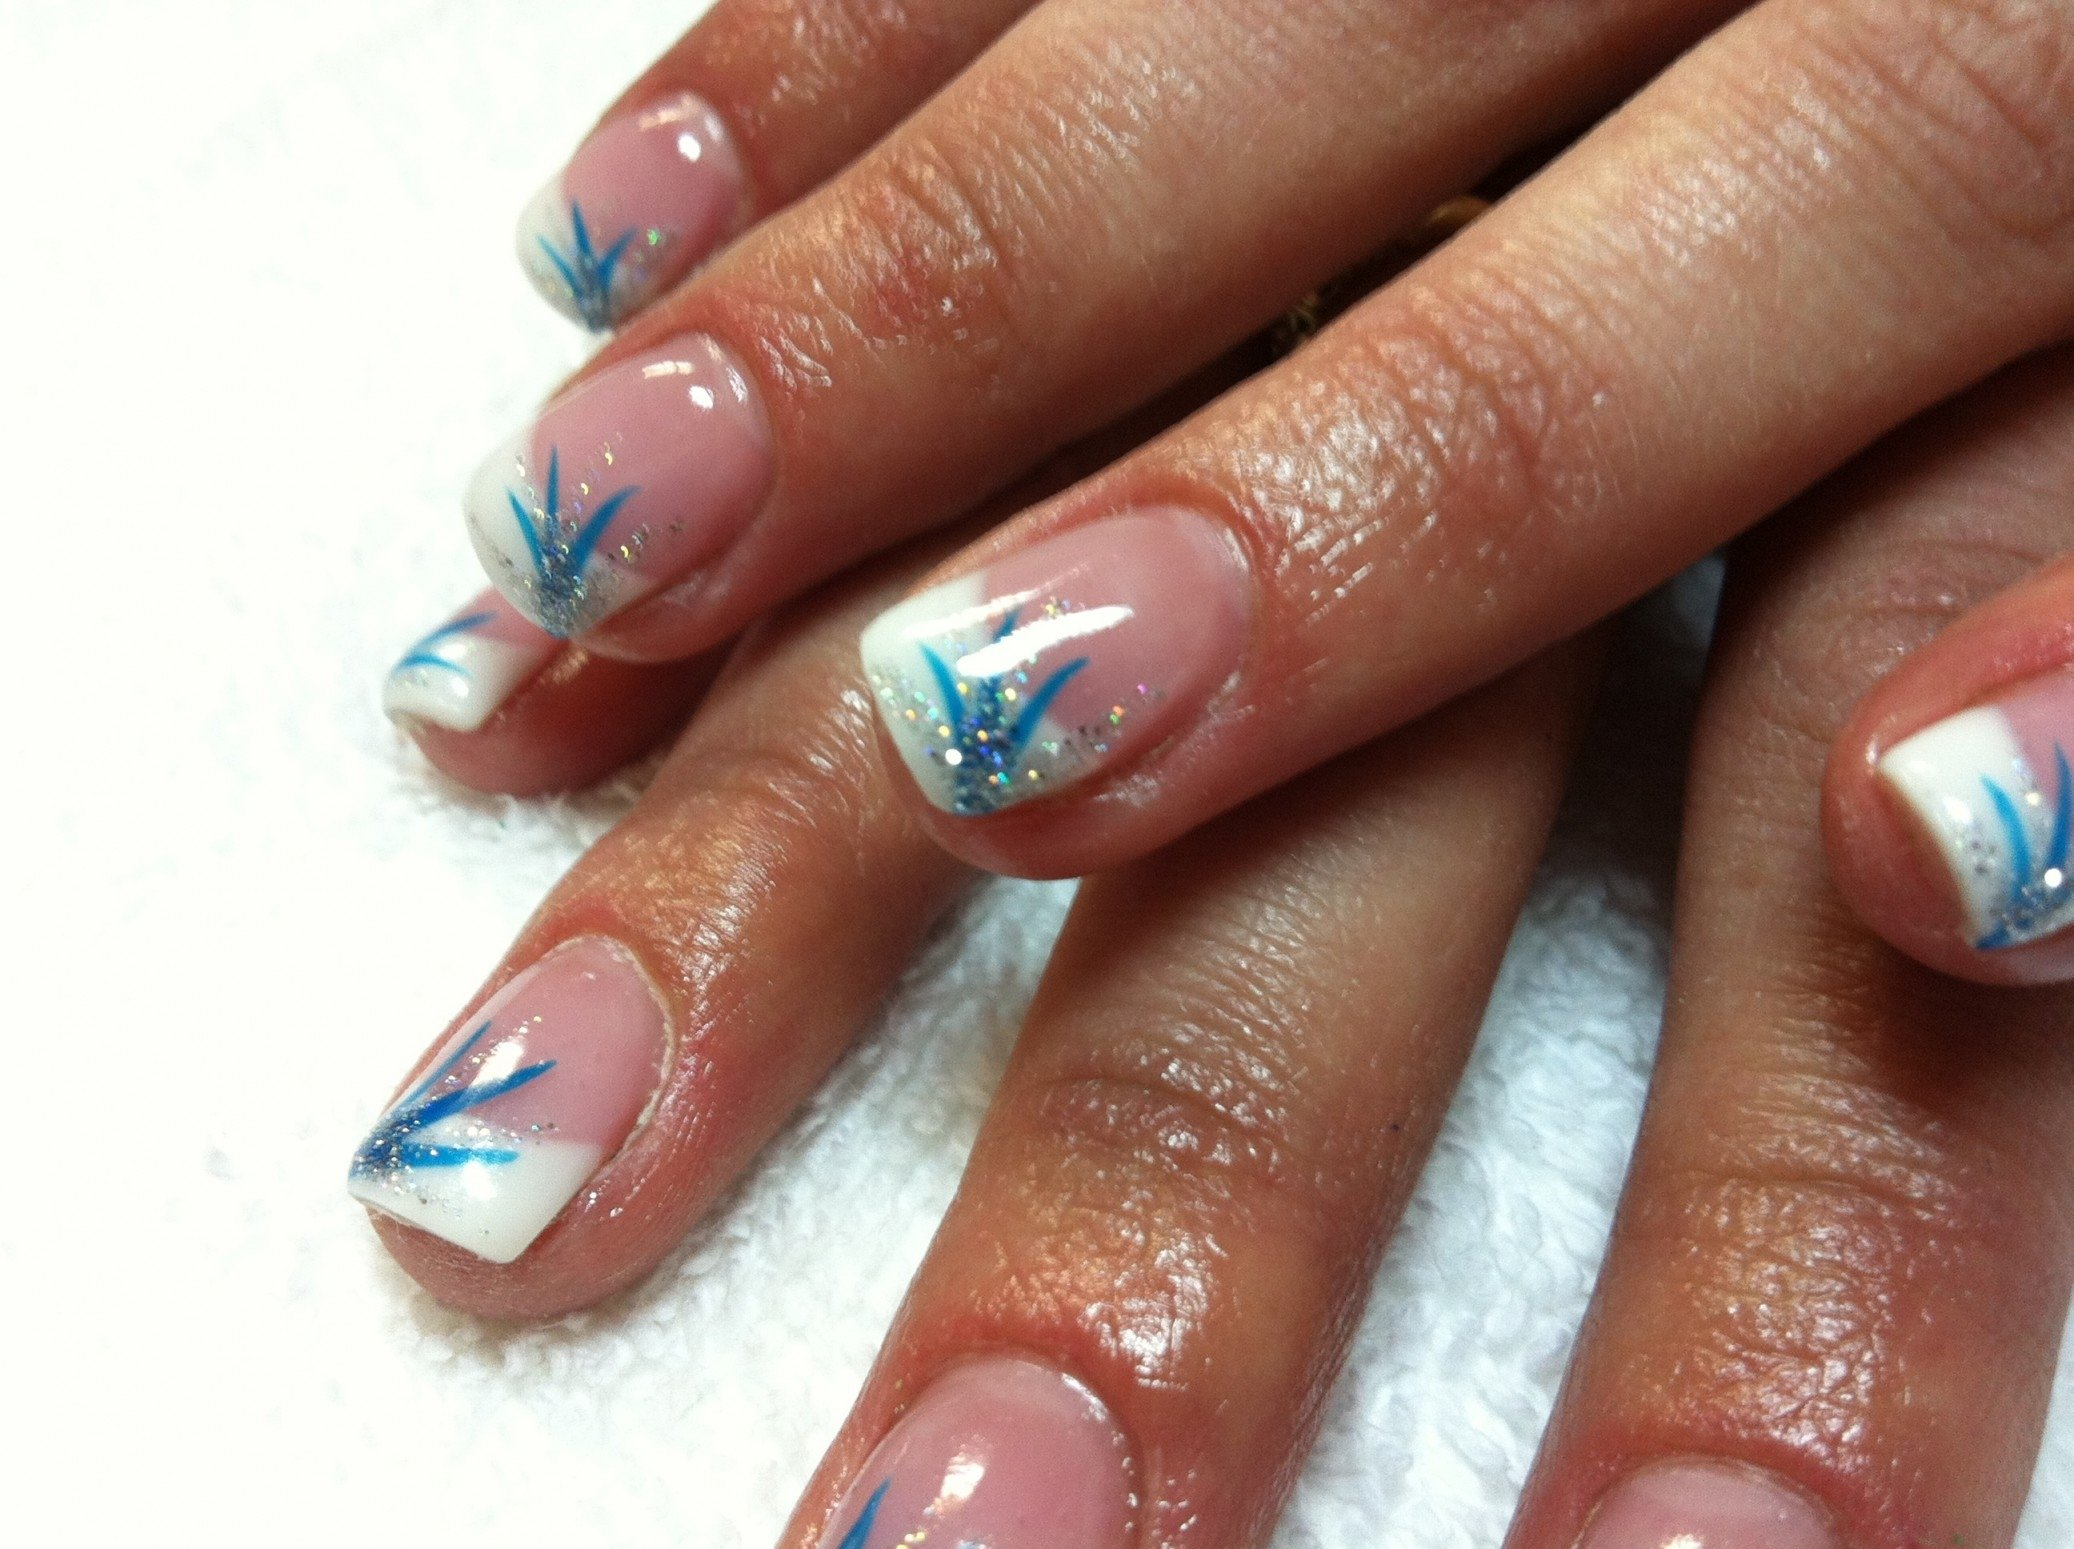 10 Awesome French Tip Nail Design Ideas french tip gel nail designs simple nail design ideas 38831 2020